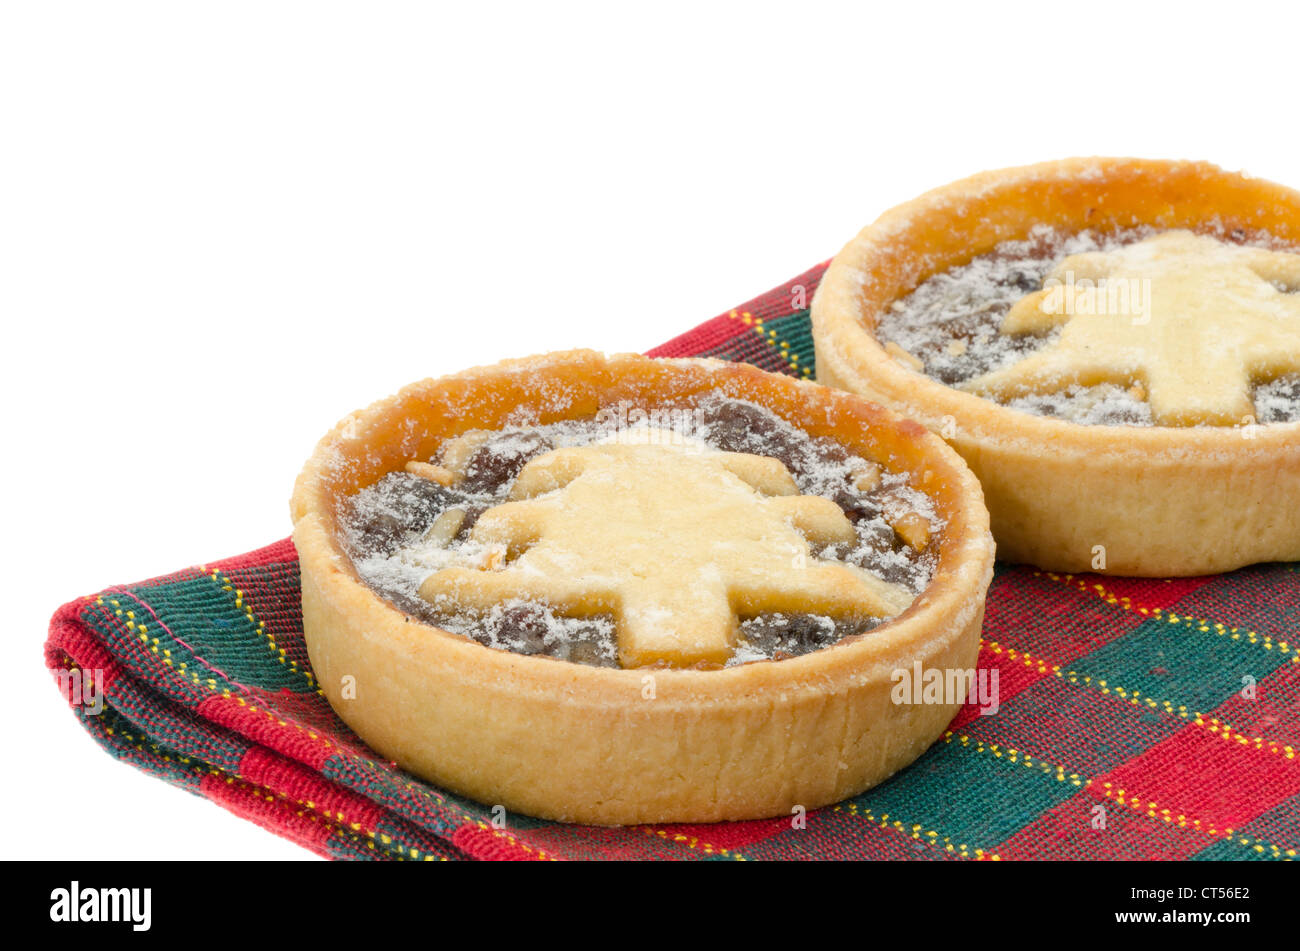 Festive or Christmas mince pie with a shallow depth of field, focus on foreground - studio shot with a white background - Stock Image